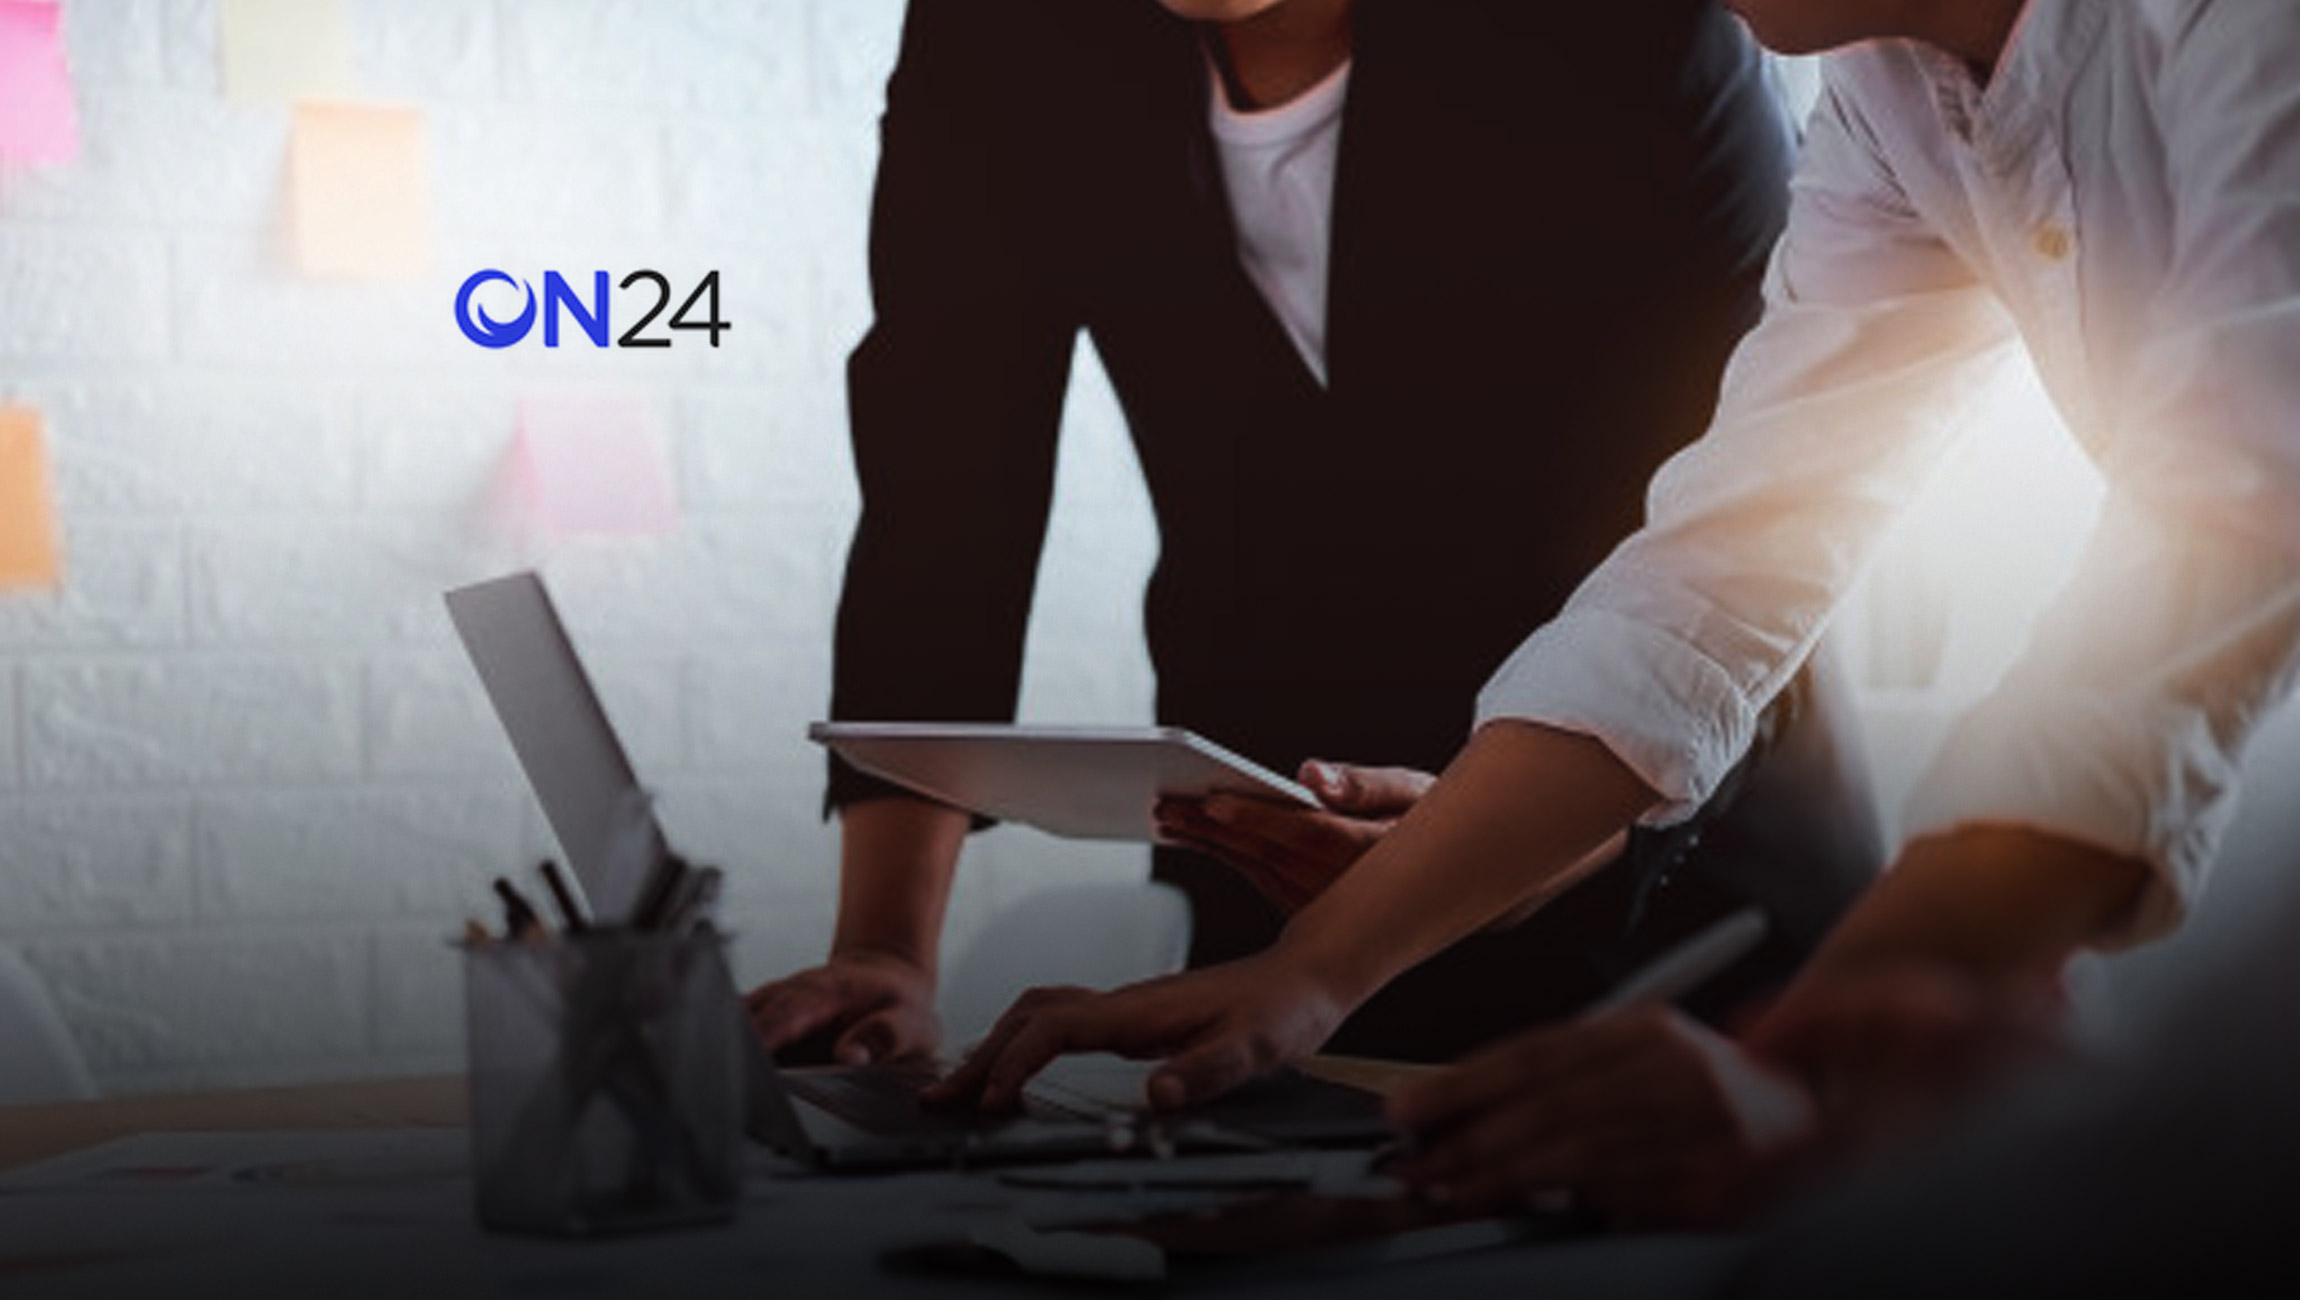 ON24 Empowers Businesses to Turn Digital Engagement Into Revenue with Launch of ON24 Conversion Tools